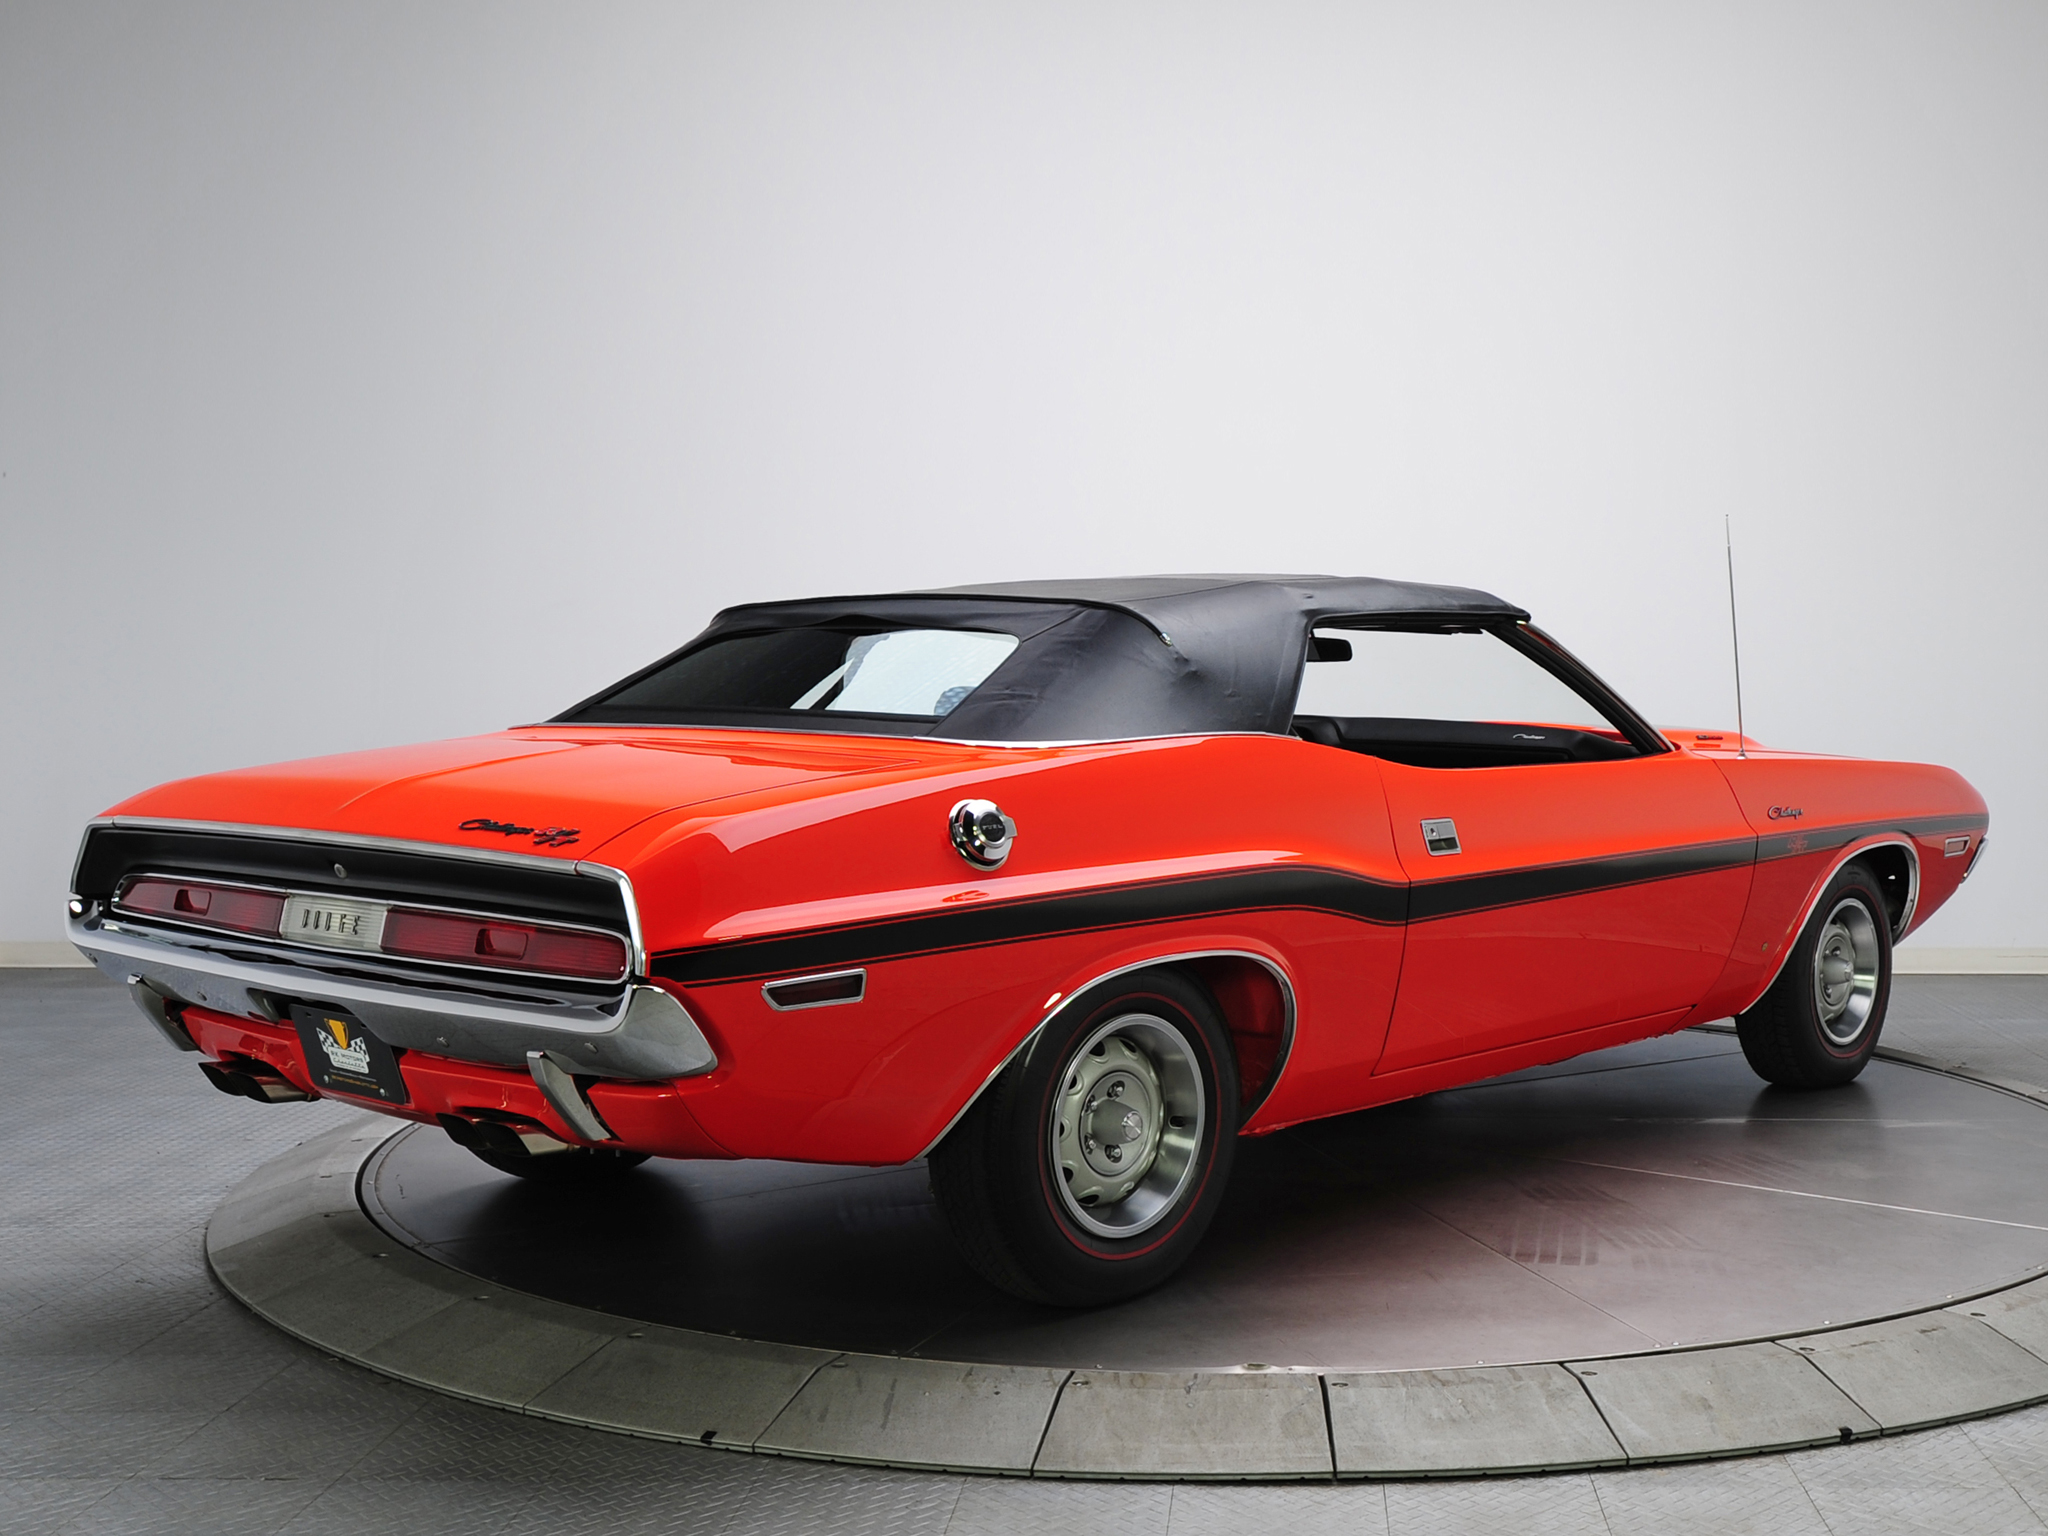 Charger Vs Challenger >> 1970 Dodge Challenger R-T 383 Magnum Convertible muscle classic wallpaper | 2048x1536 | 116965 ...